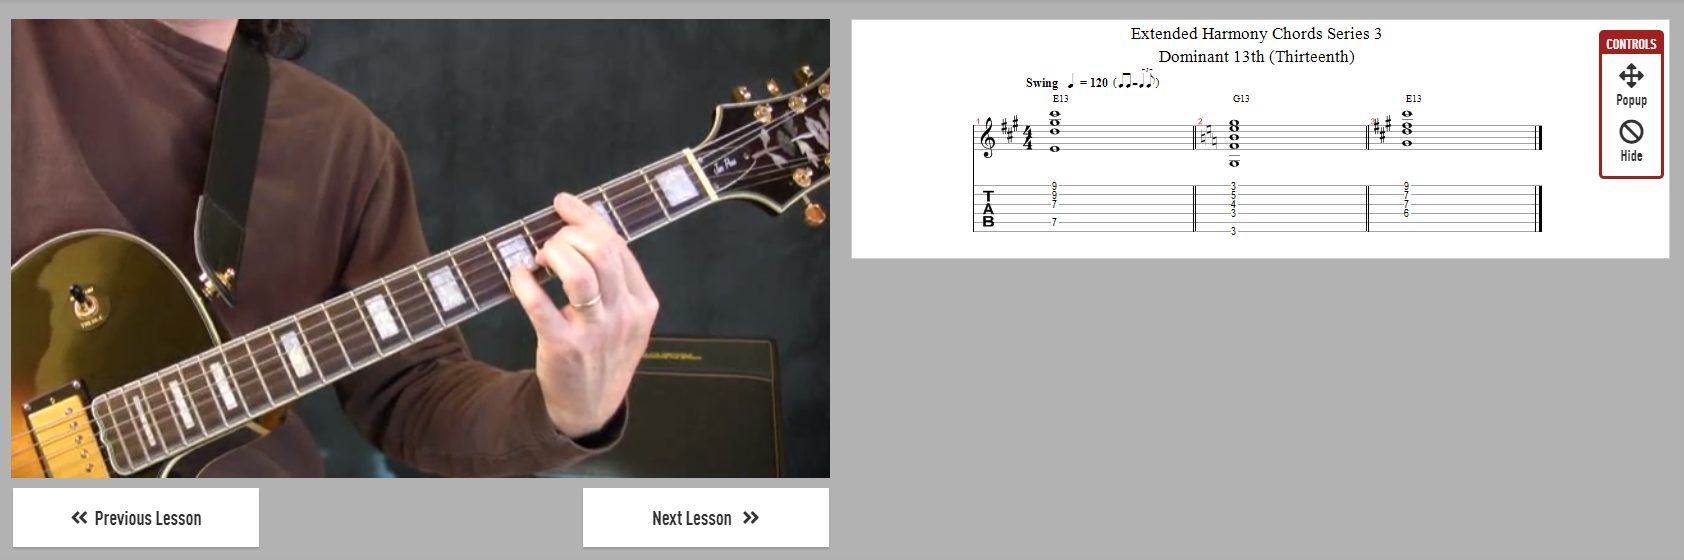 Extended Harmony Chords for Jazz Guitar Lessons